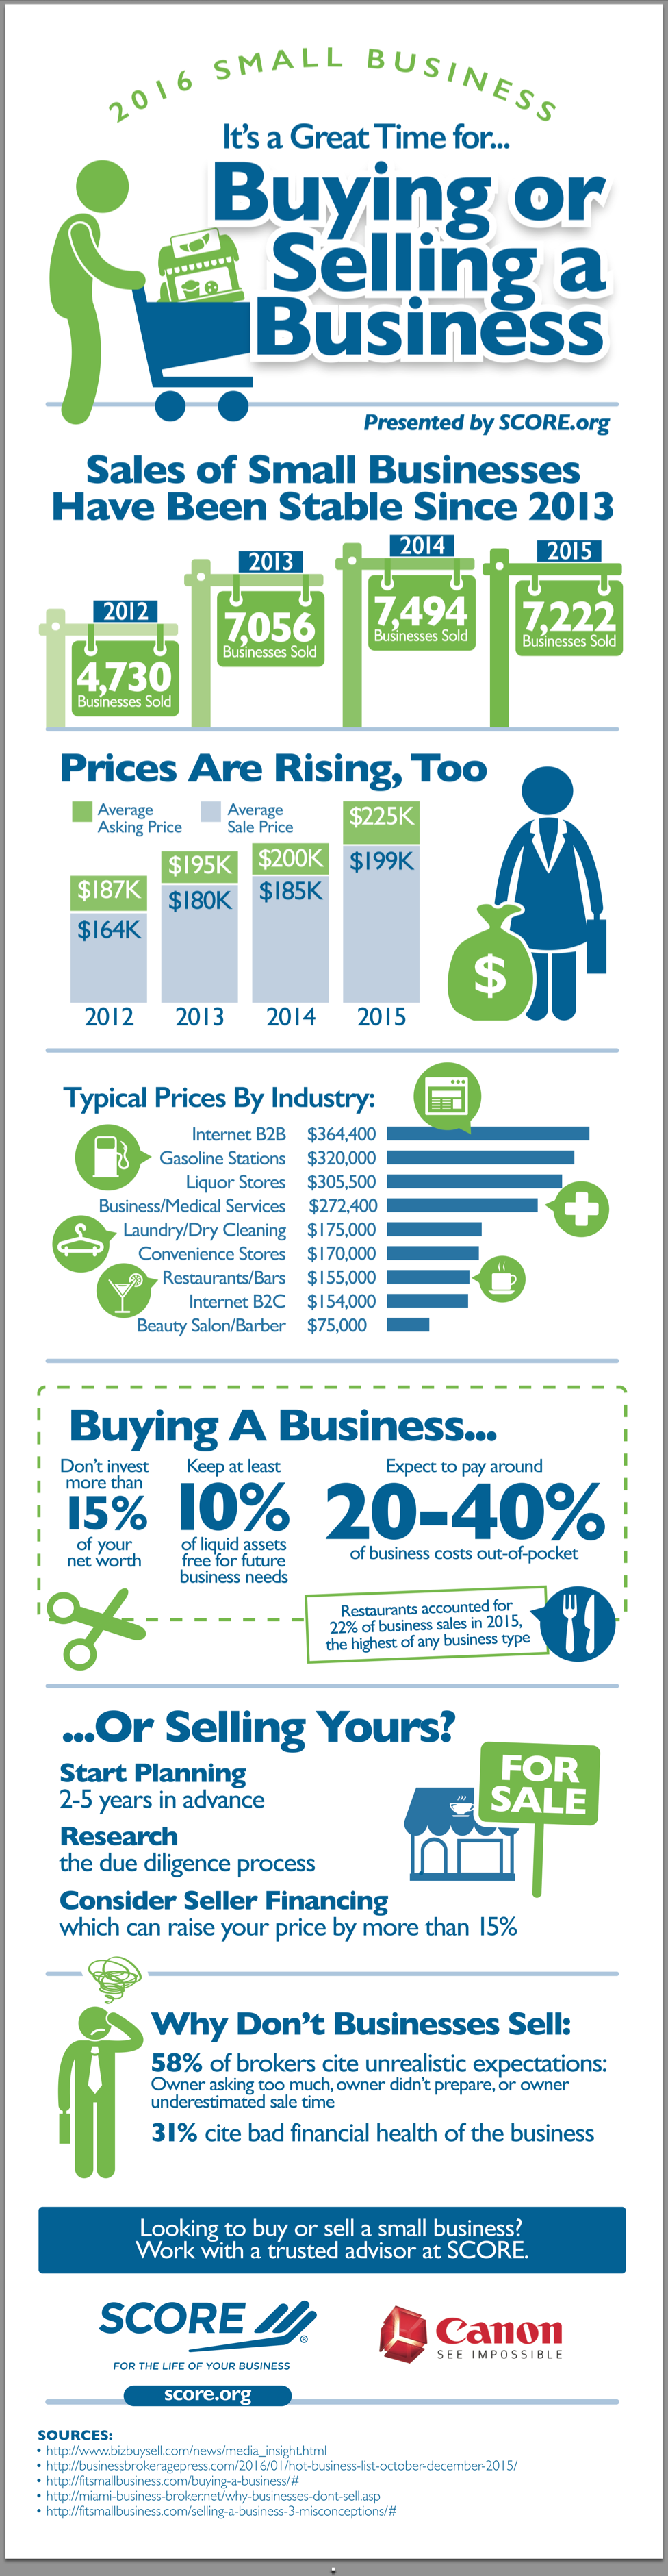 Great-Time-to-Buy-Sell-Small-Biz